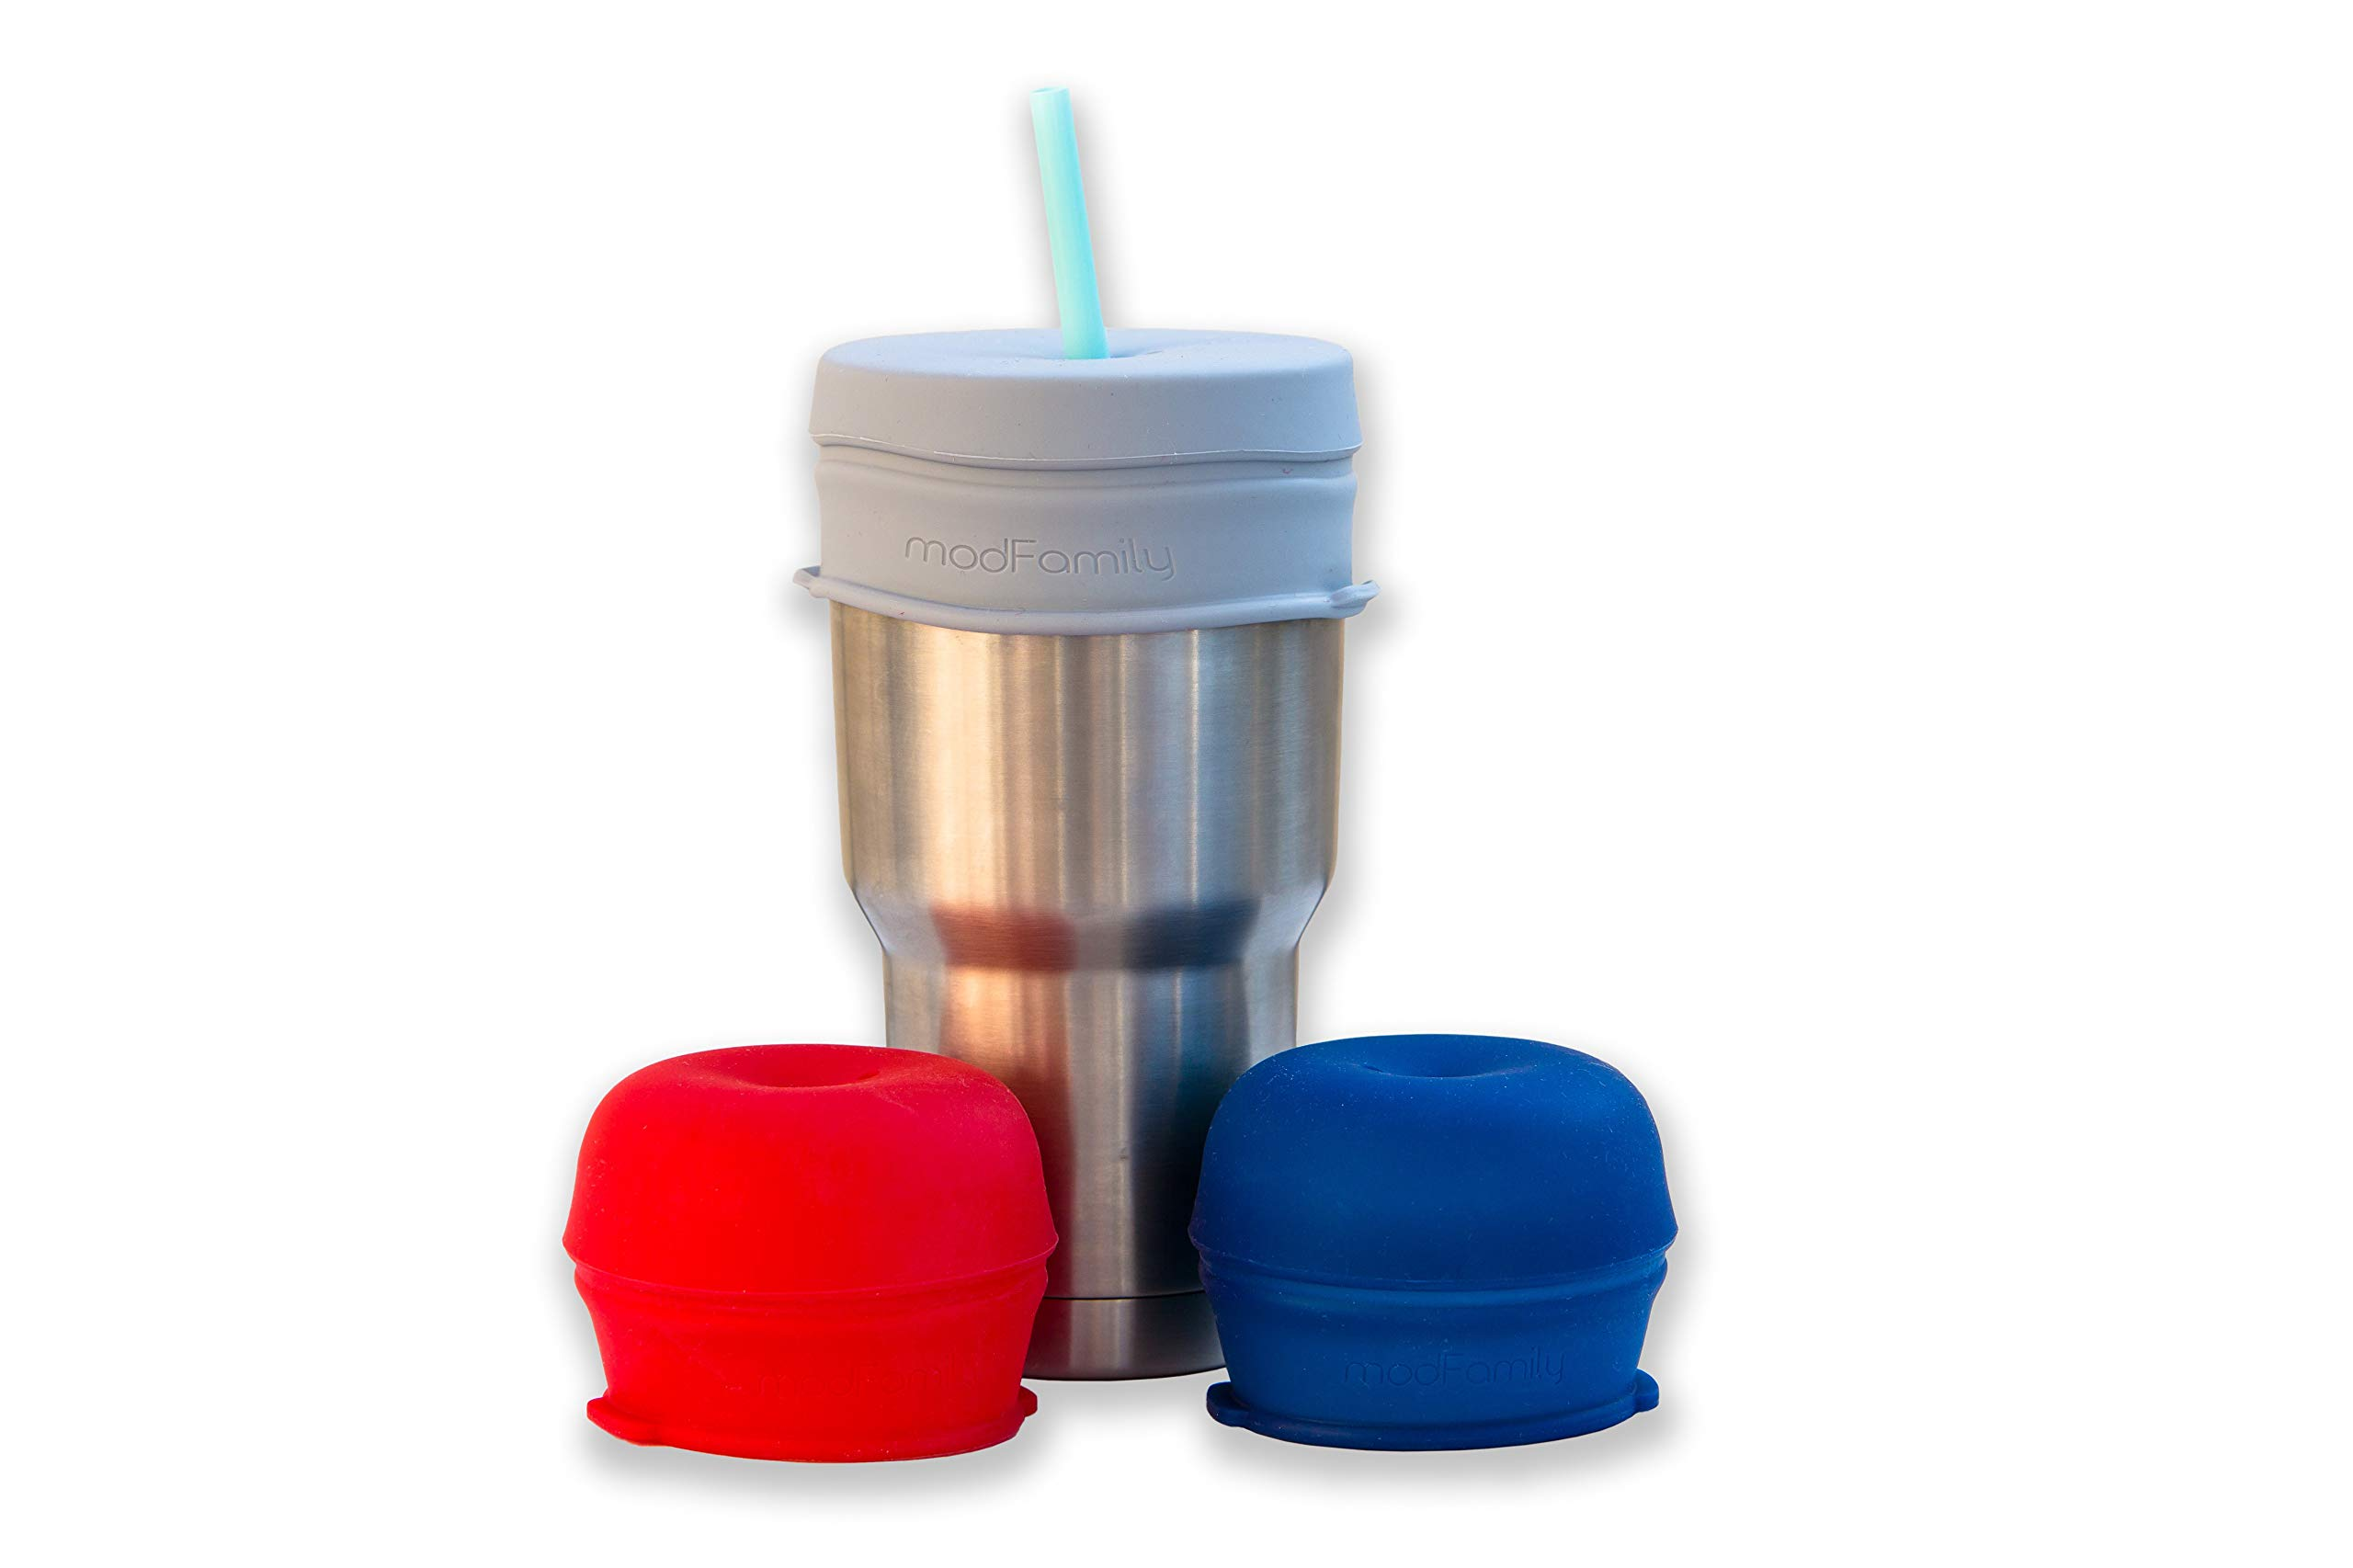 O-Sip! Silicone Straw Lids - XL size (Pack of 3), stretches to cover Tumblers, Large Cups and Mugs, Yeti Rambler, Mason Jars; Spill proof, Reusable, Durable, Replacement Lid Accessory (Red,Navy,Gray)